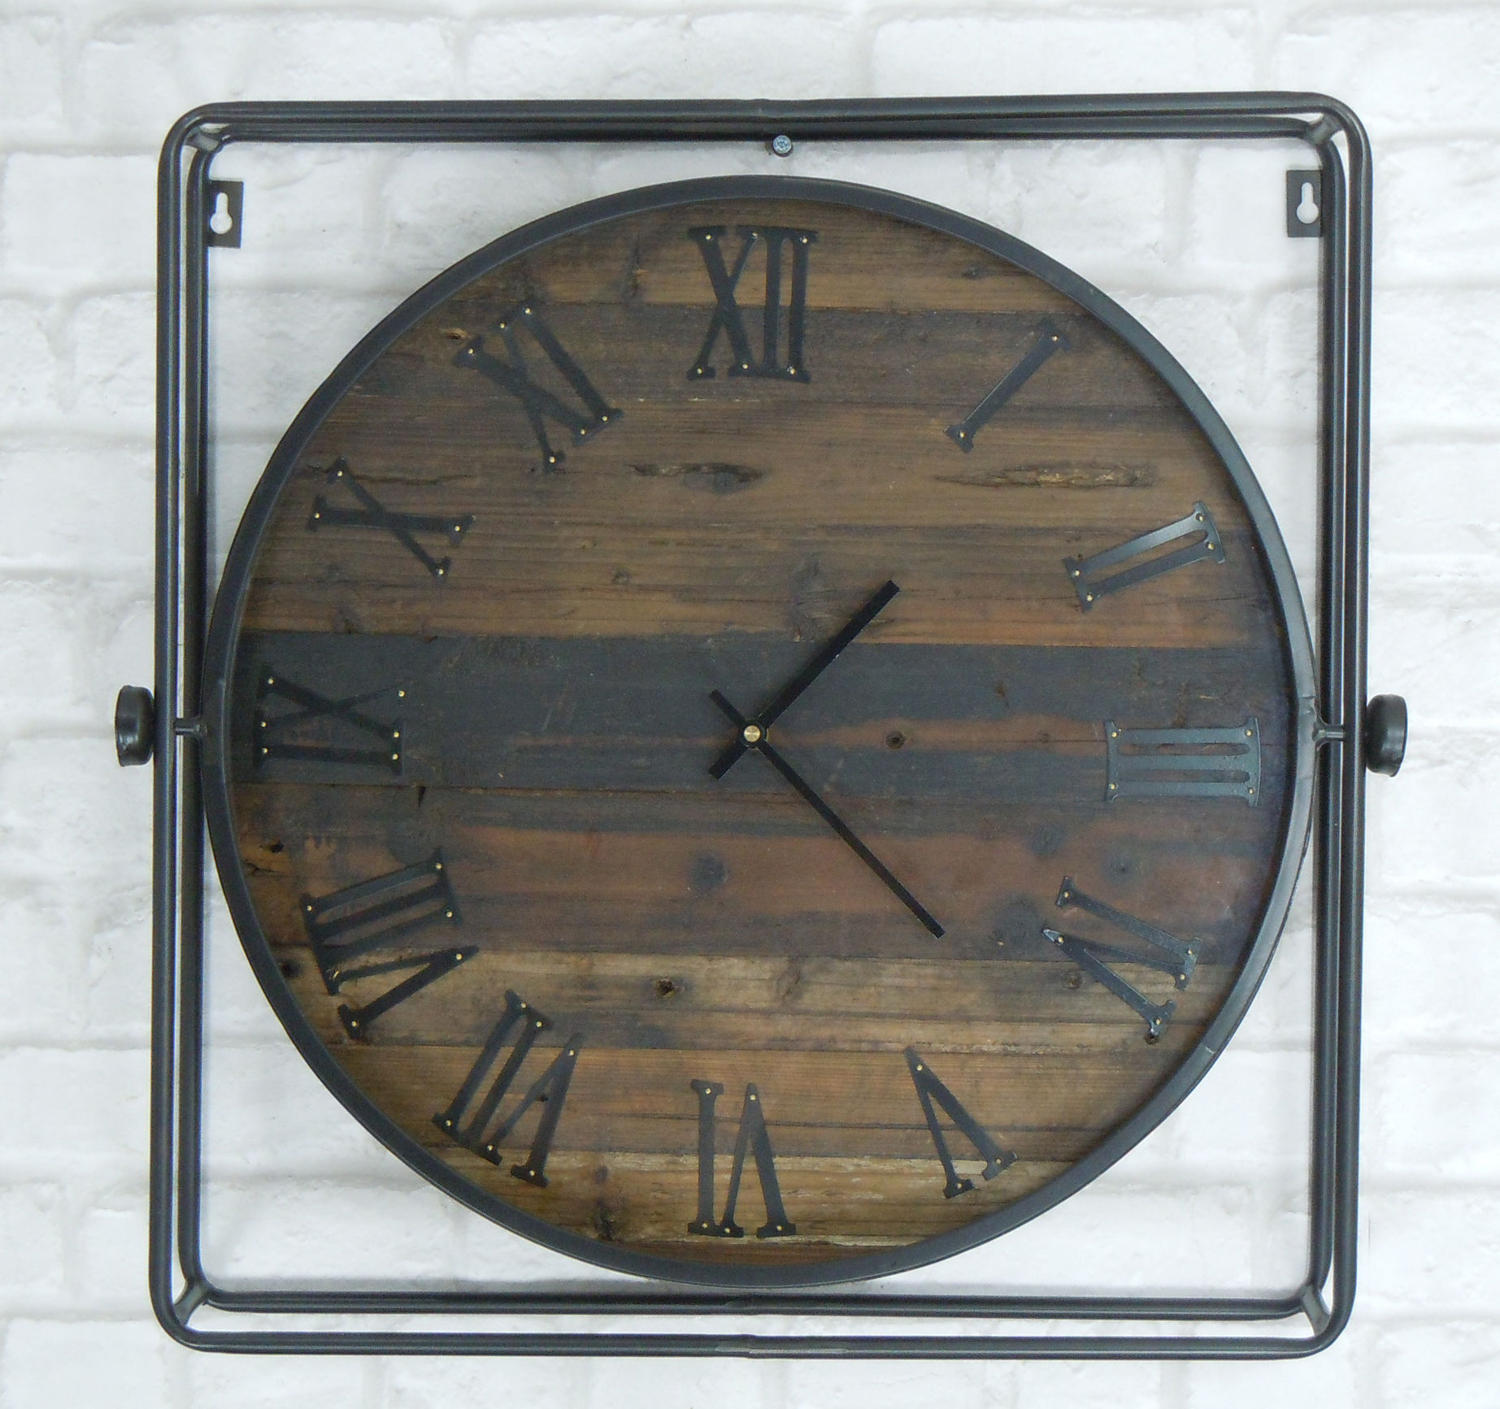 Metal framed wall clock